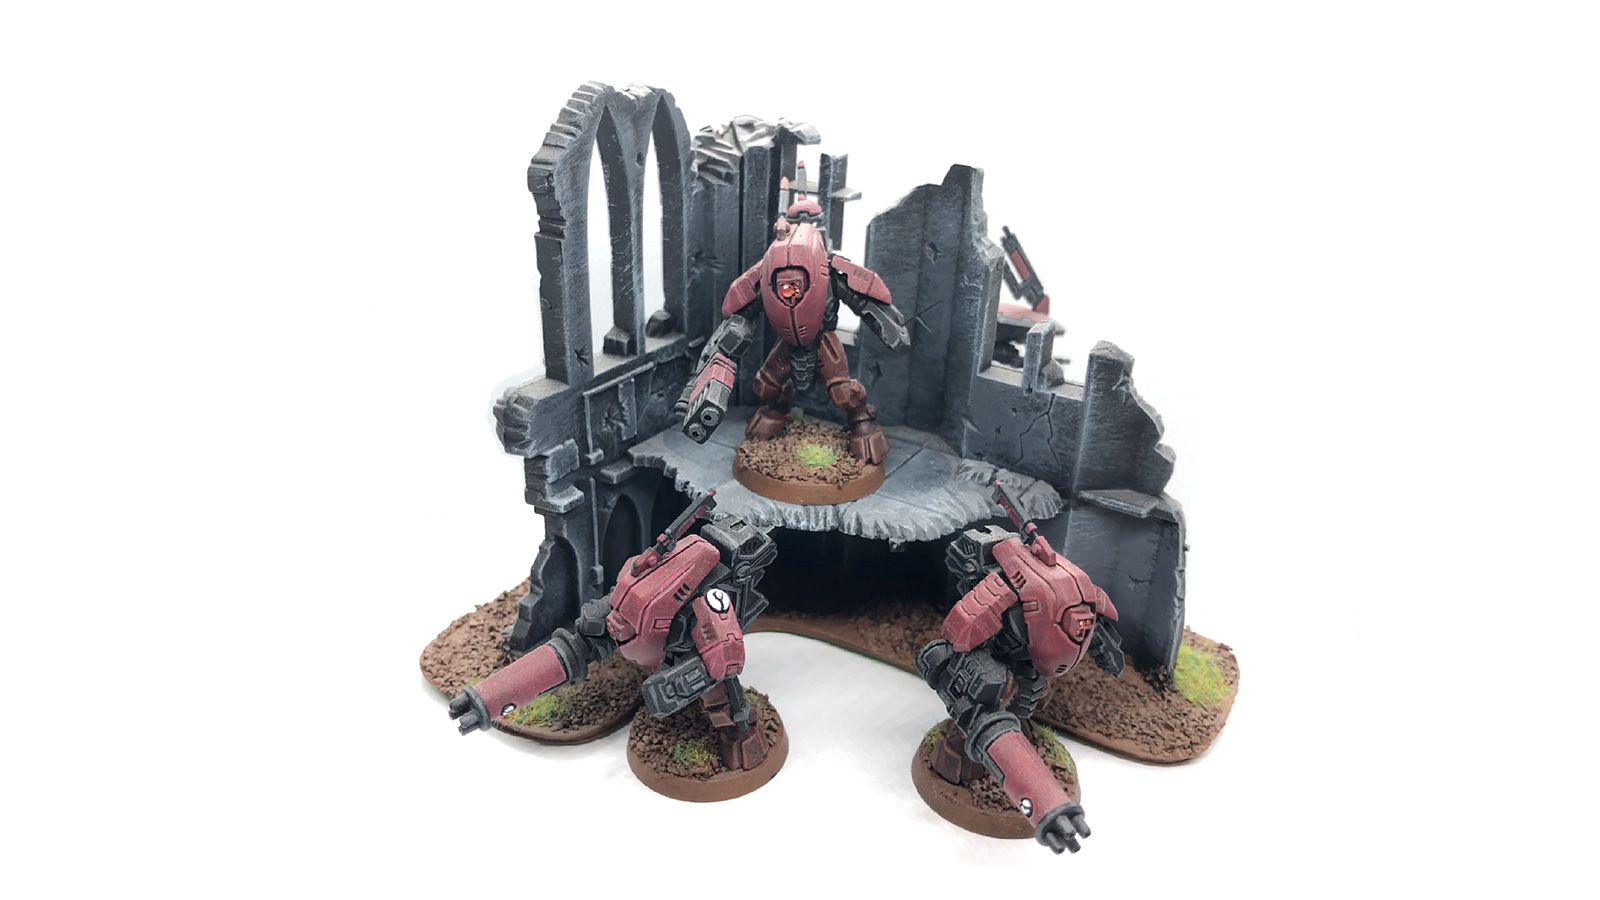 Tau Stealth Suits on building ruin